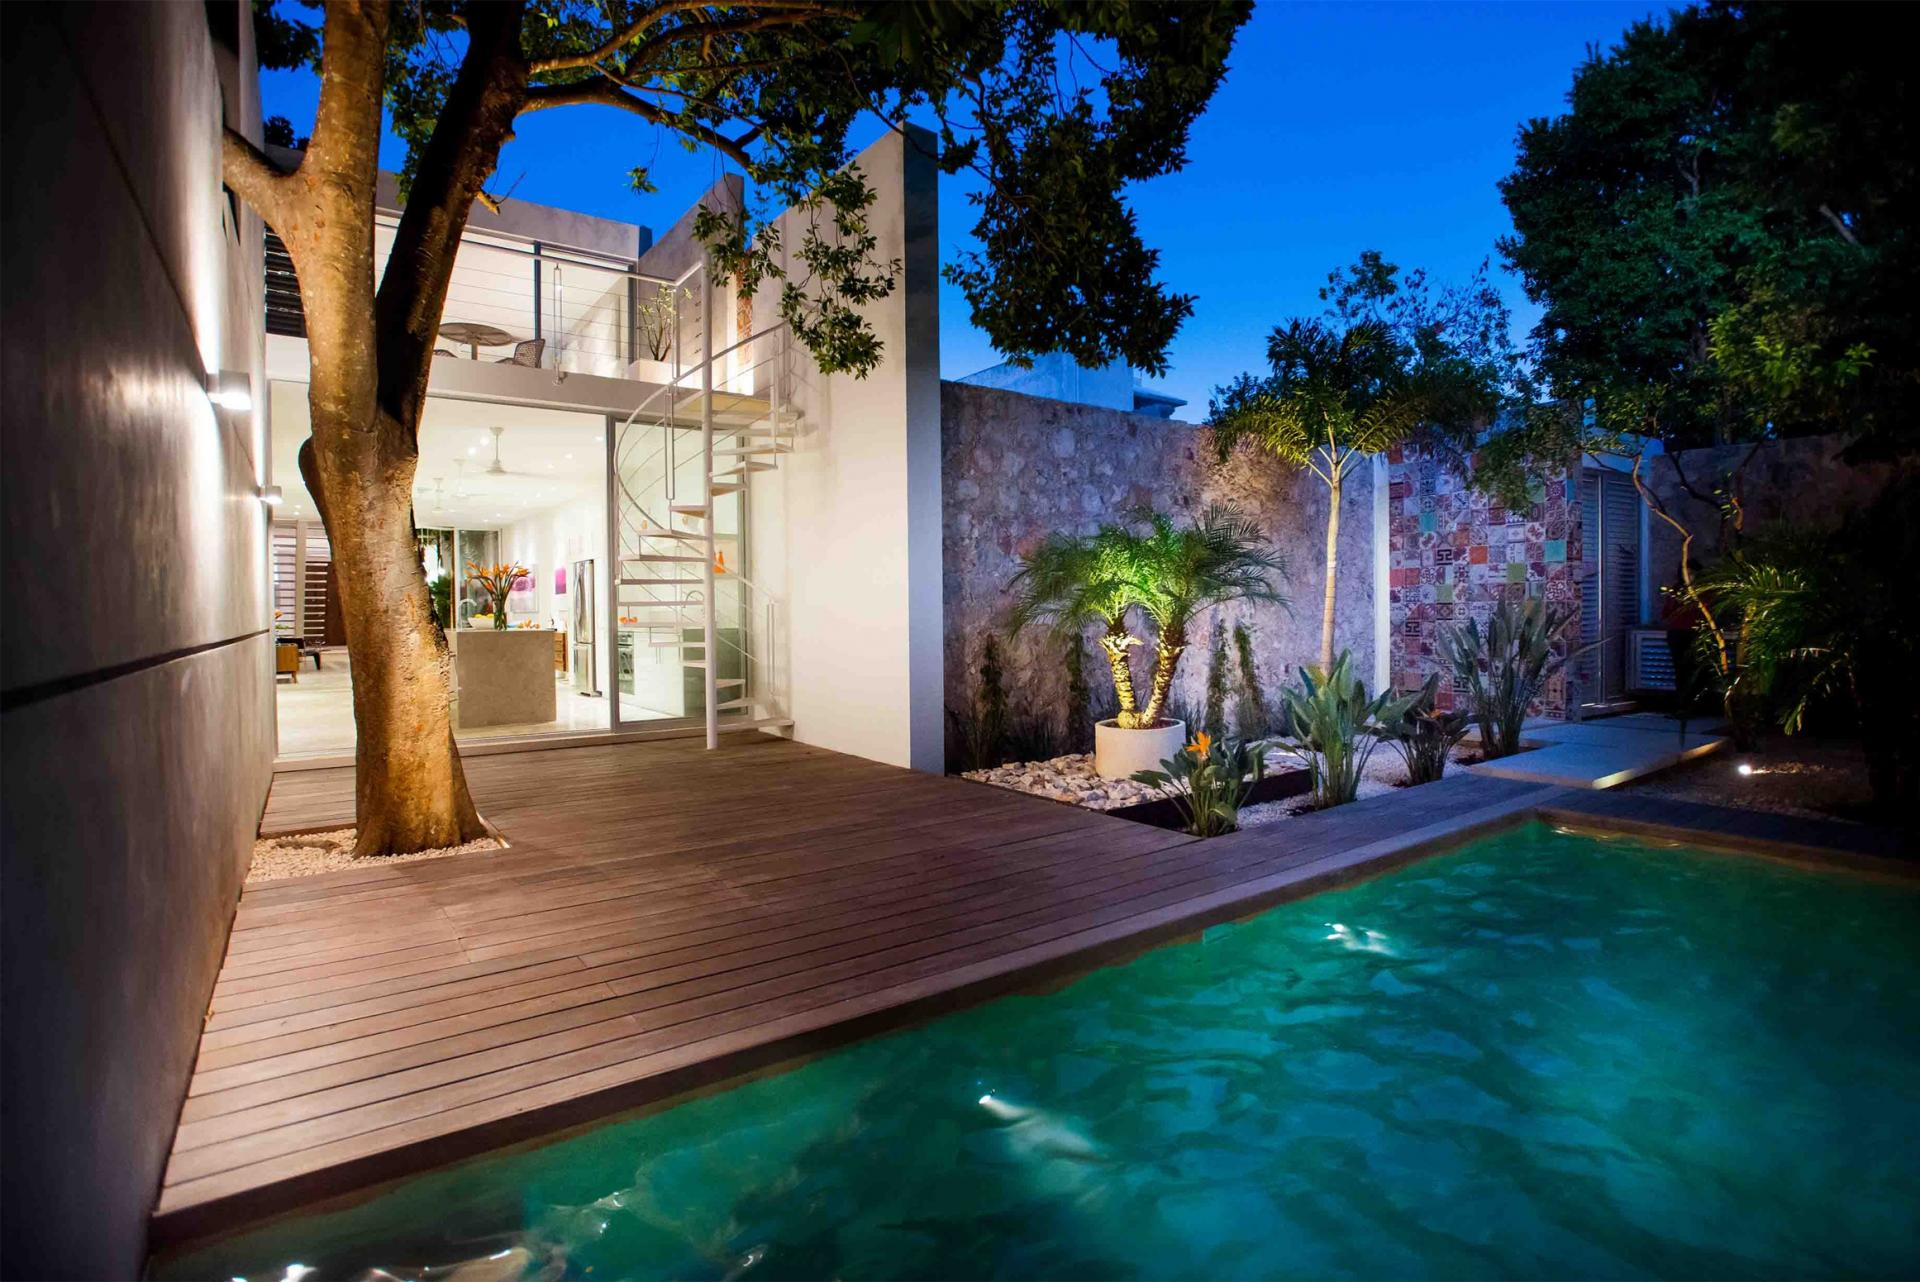 B+H 45 residence in the historic centre of the city of Merida by H. Ponce arquitectos-02